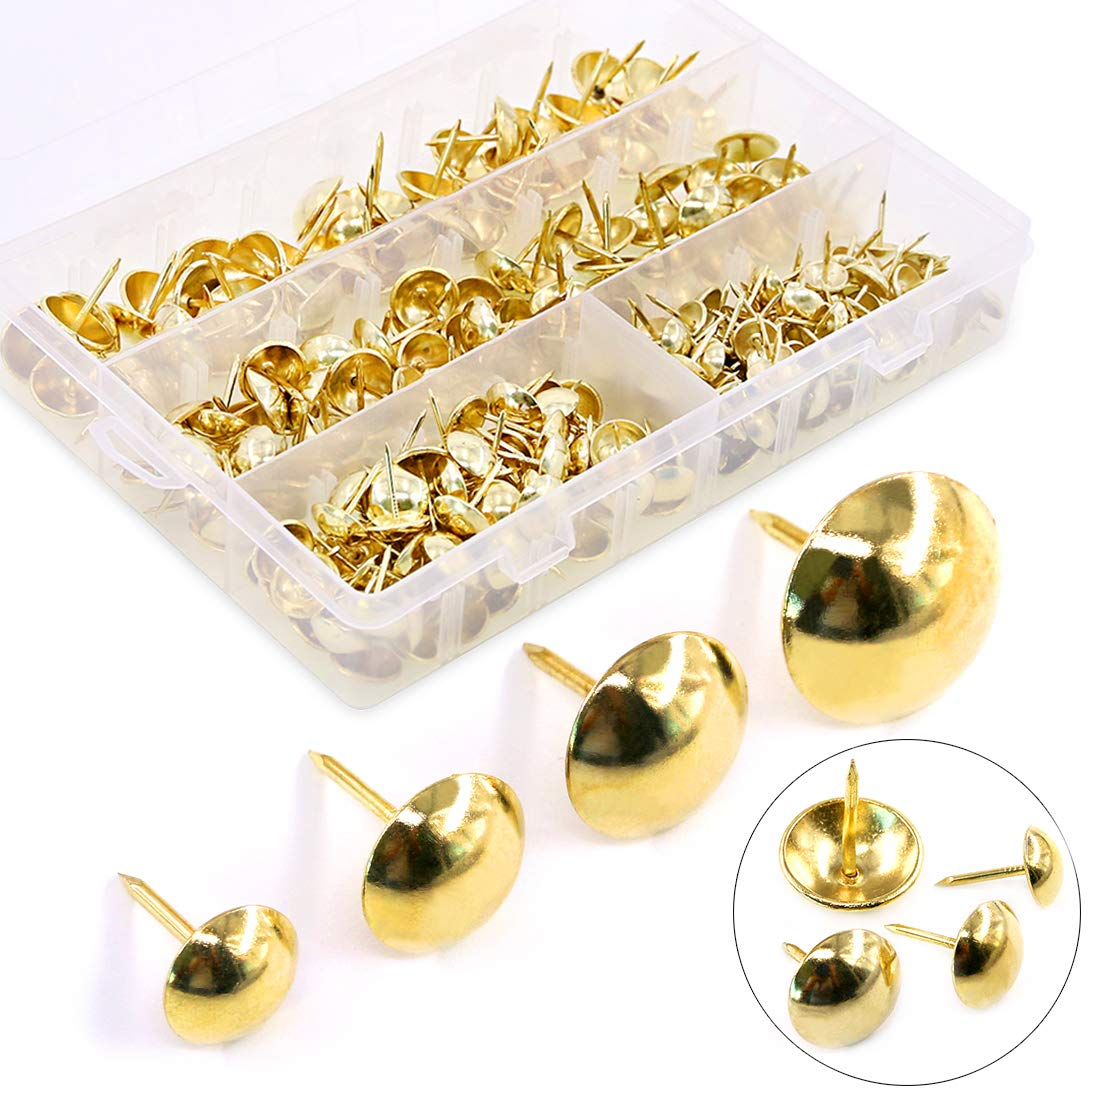 Hilitchi 280Pcs 4 Sizes Golden 7/16'' 9/16'' 5/8'' 3/4'' Upholstery Tacks for Furniture, Upholstery Furniture Nails Pins Assortment Kit for Sofa & headboards, Thumb Tack Push Pins